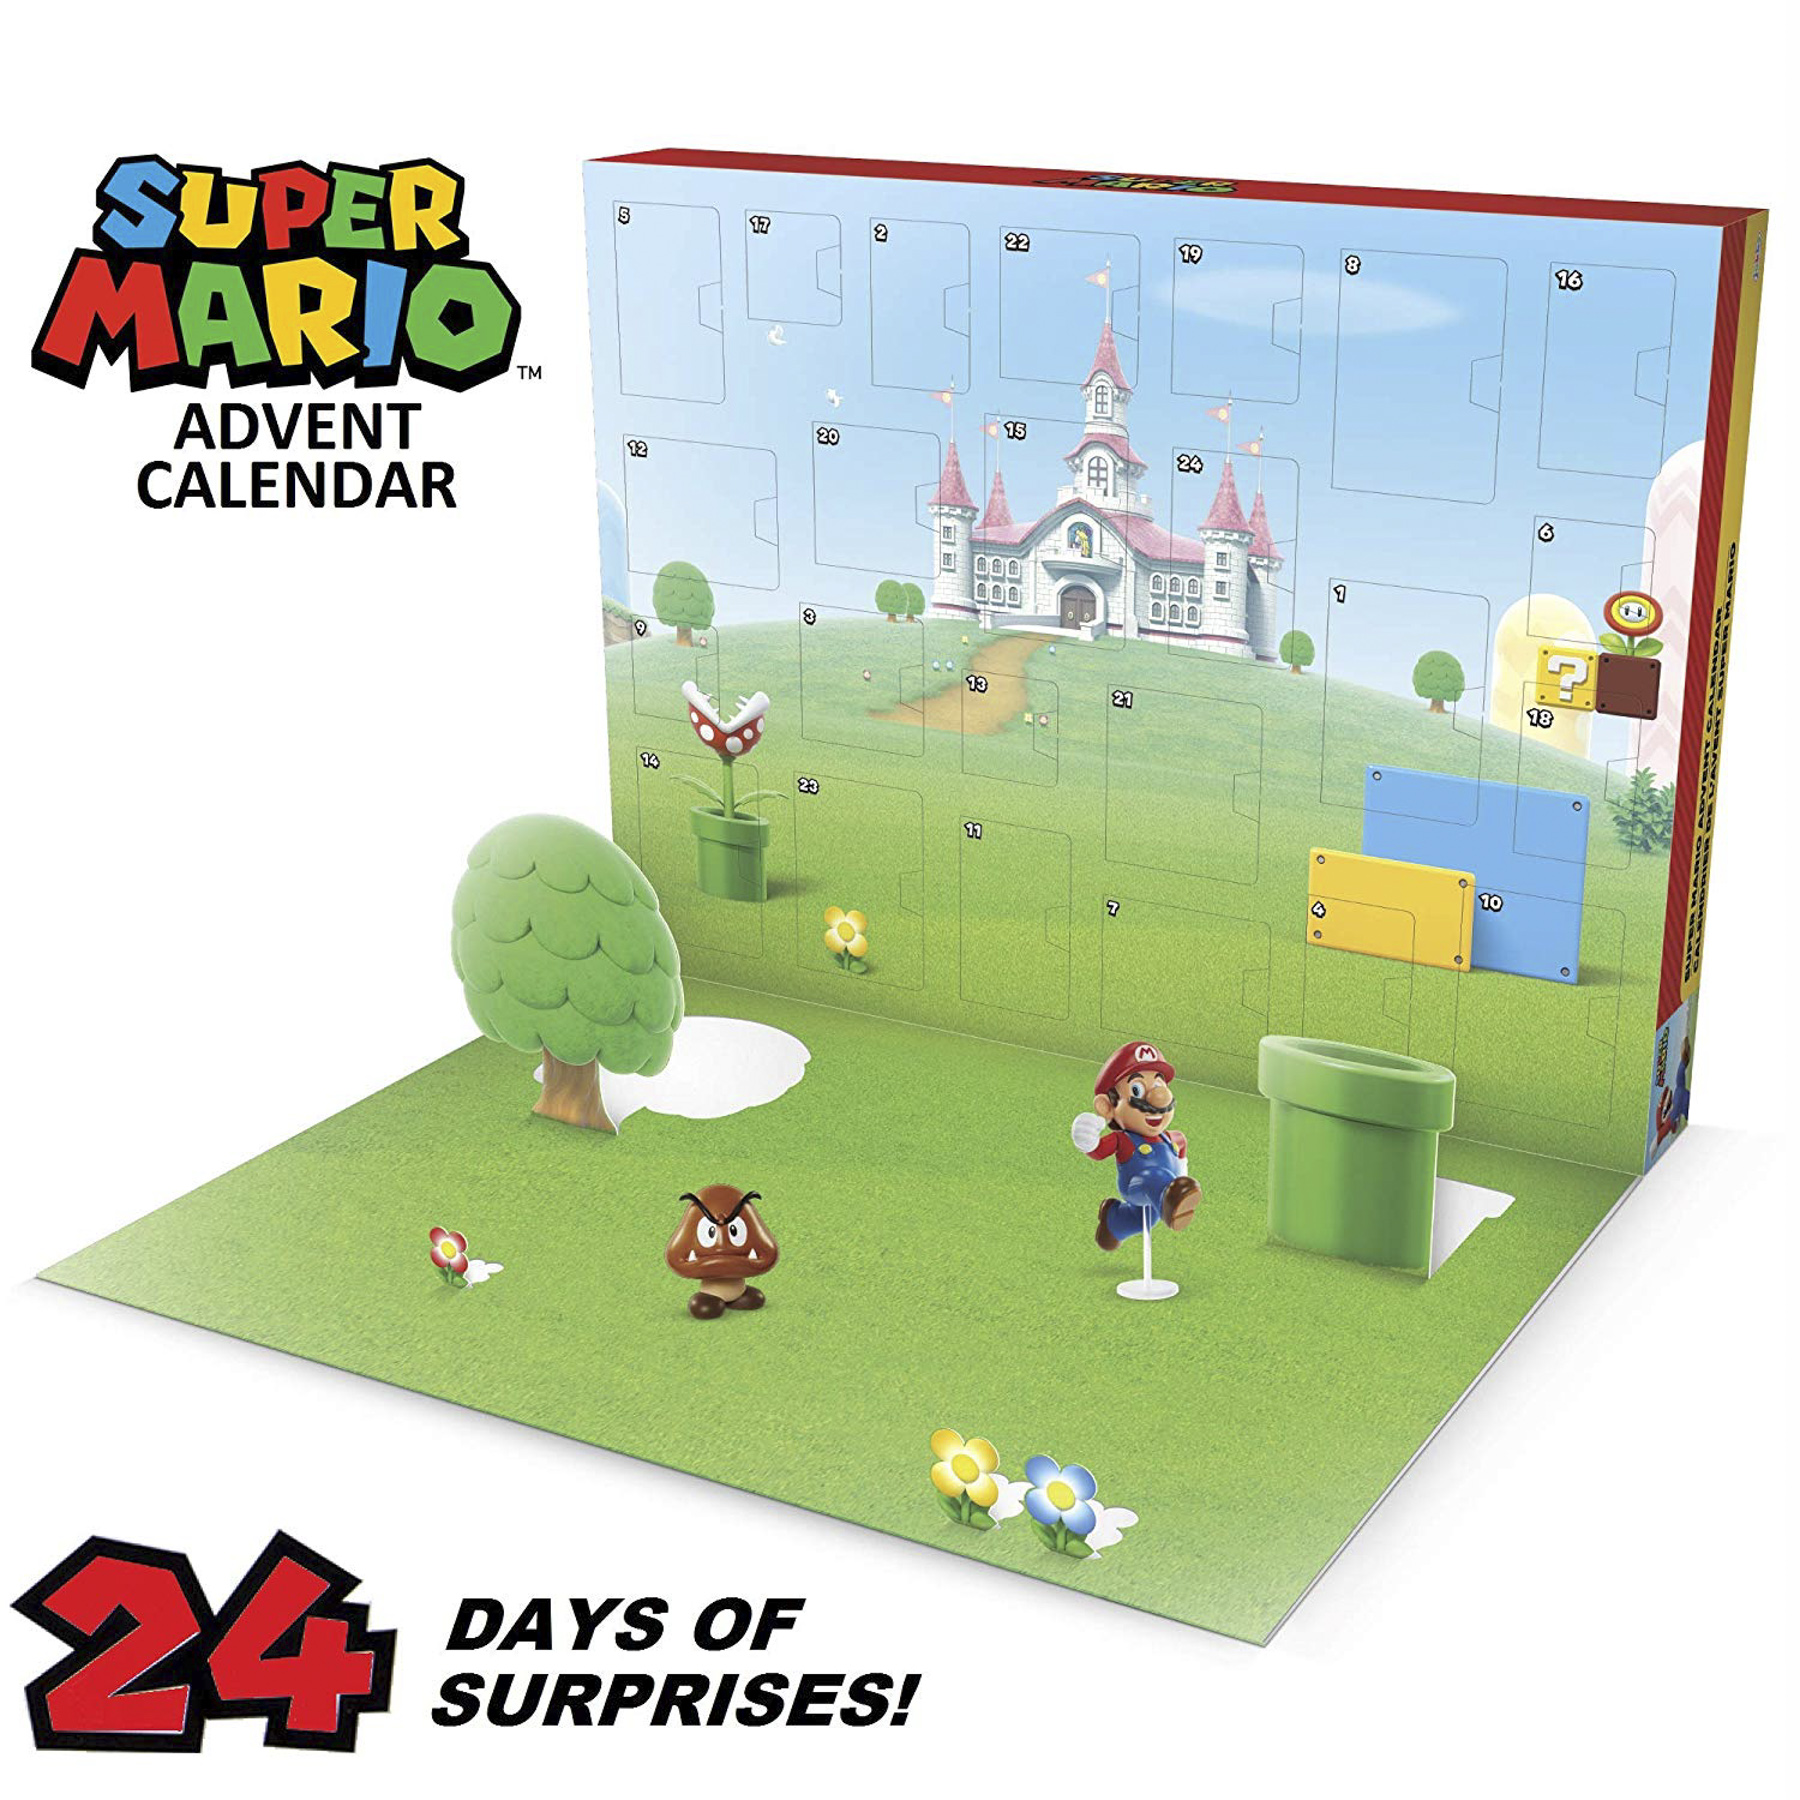 """Nintendo Advent Calendar Super Mario Christmas Holiday Calendar with 17 Articulated 2.5"""" Action Figures & 7 Accessories, 24 Day Surprise Countdown with Pop-Up Environment [Amazon Exclusive] CR: Amazon"""